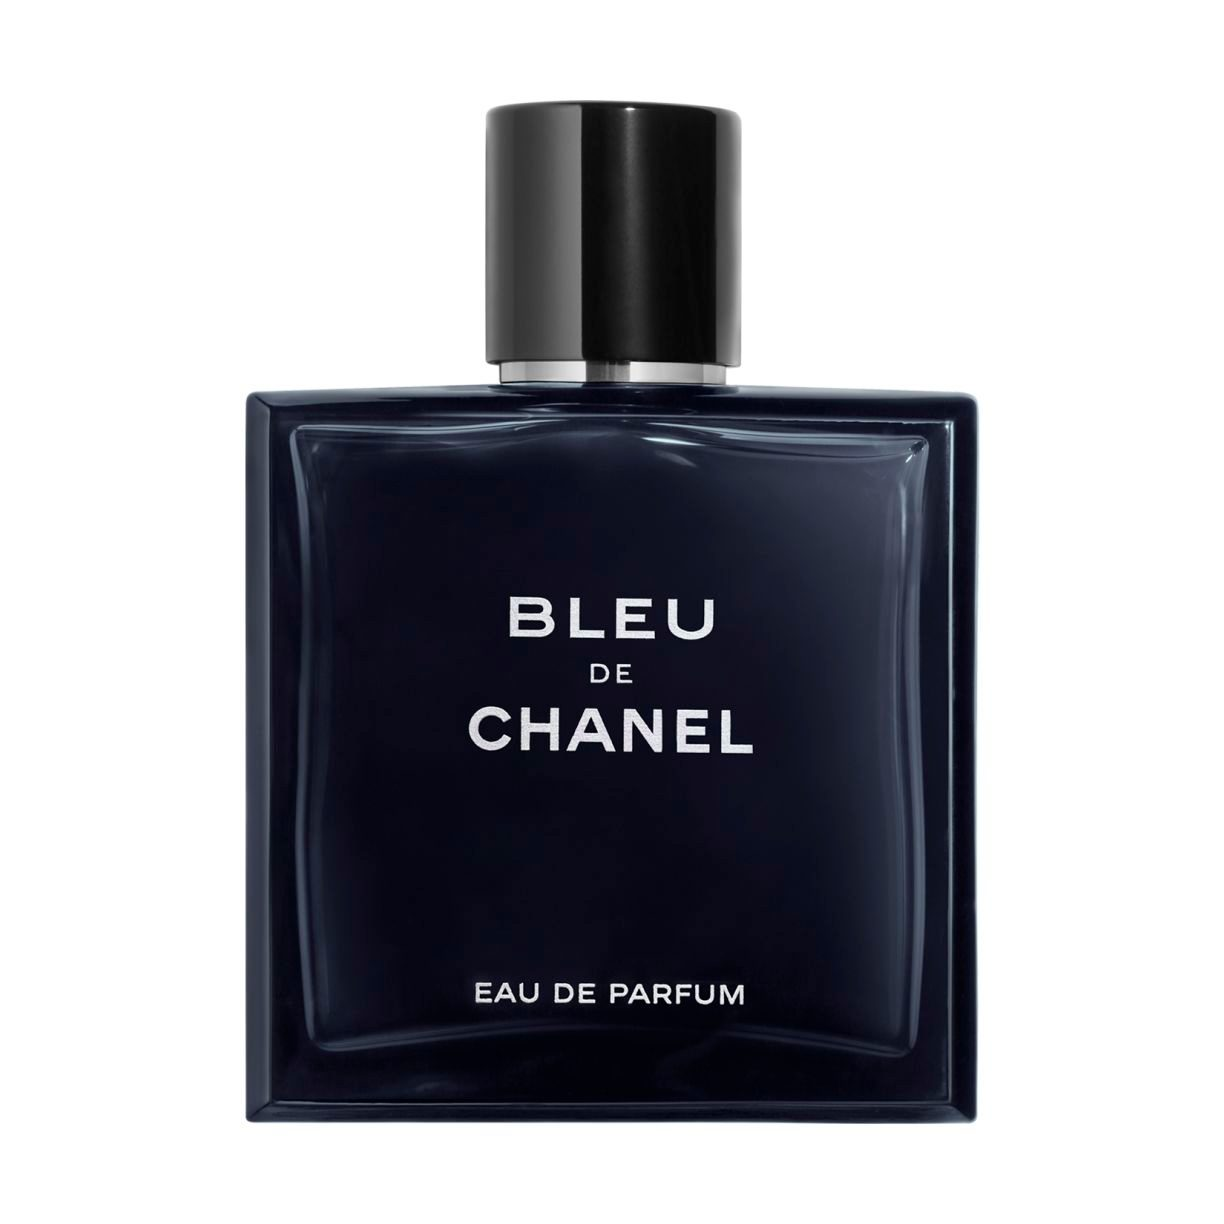 BLEU DE CHANEL สเปรย์น้ำหอม EAU DE PARFUM SPRAY 100ml